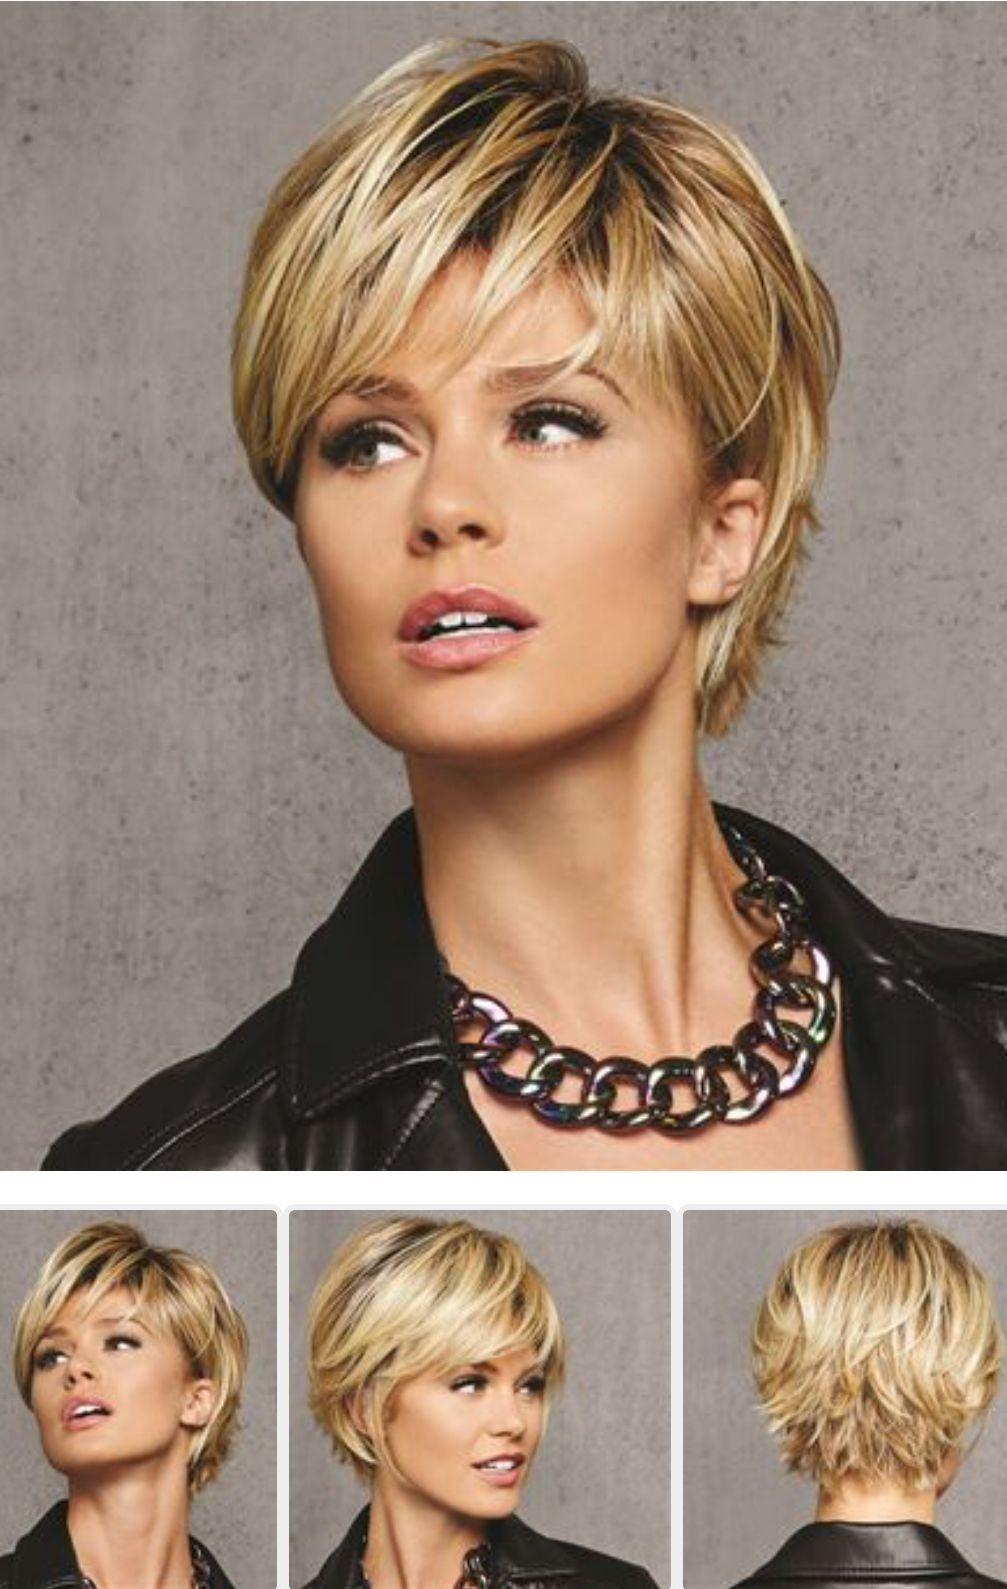 Pin by mindi g stimler on short hair pinterest hair hair